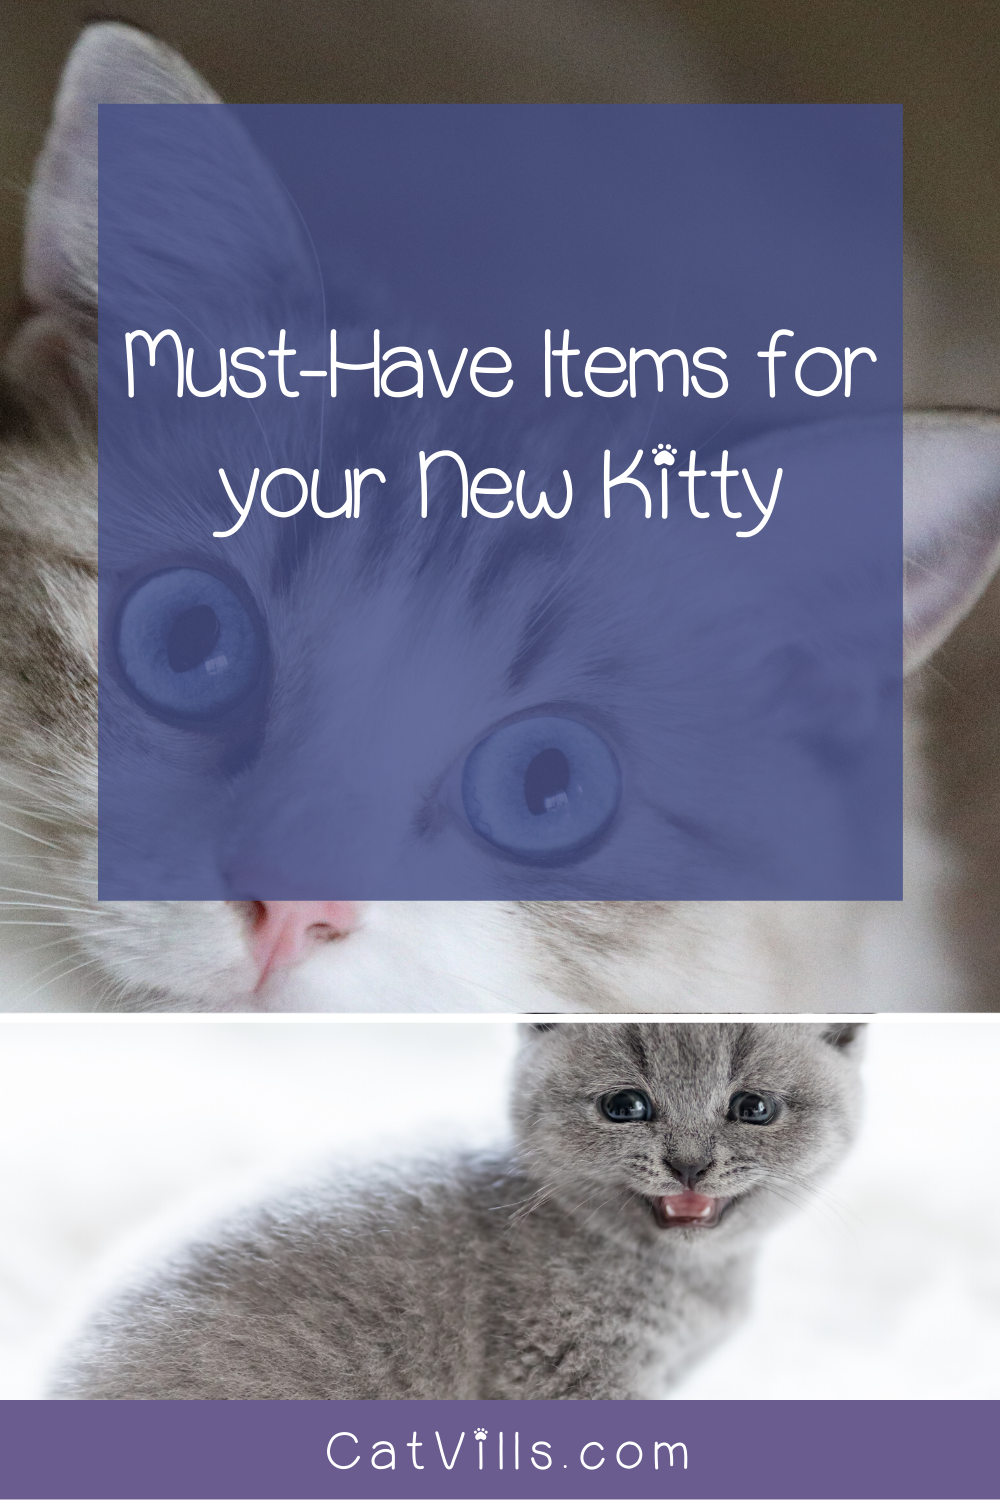 New Cat Checklist For Bringing Kitty Home In Style In 2020 Litter Training Kittens Cat Checklist Cats